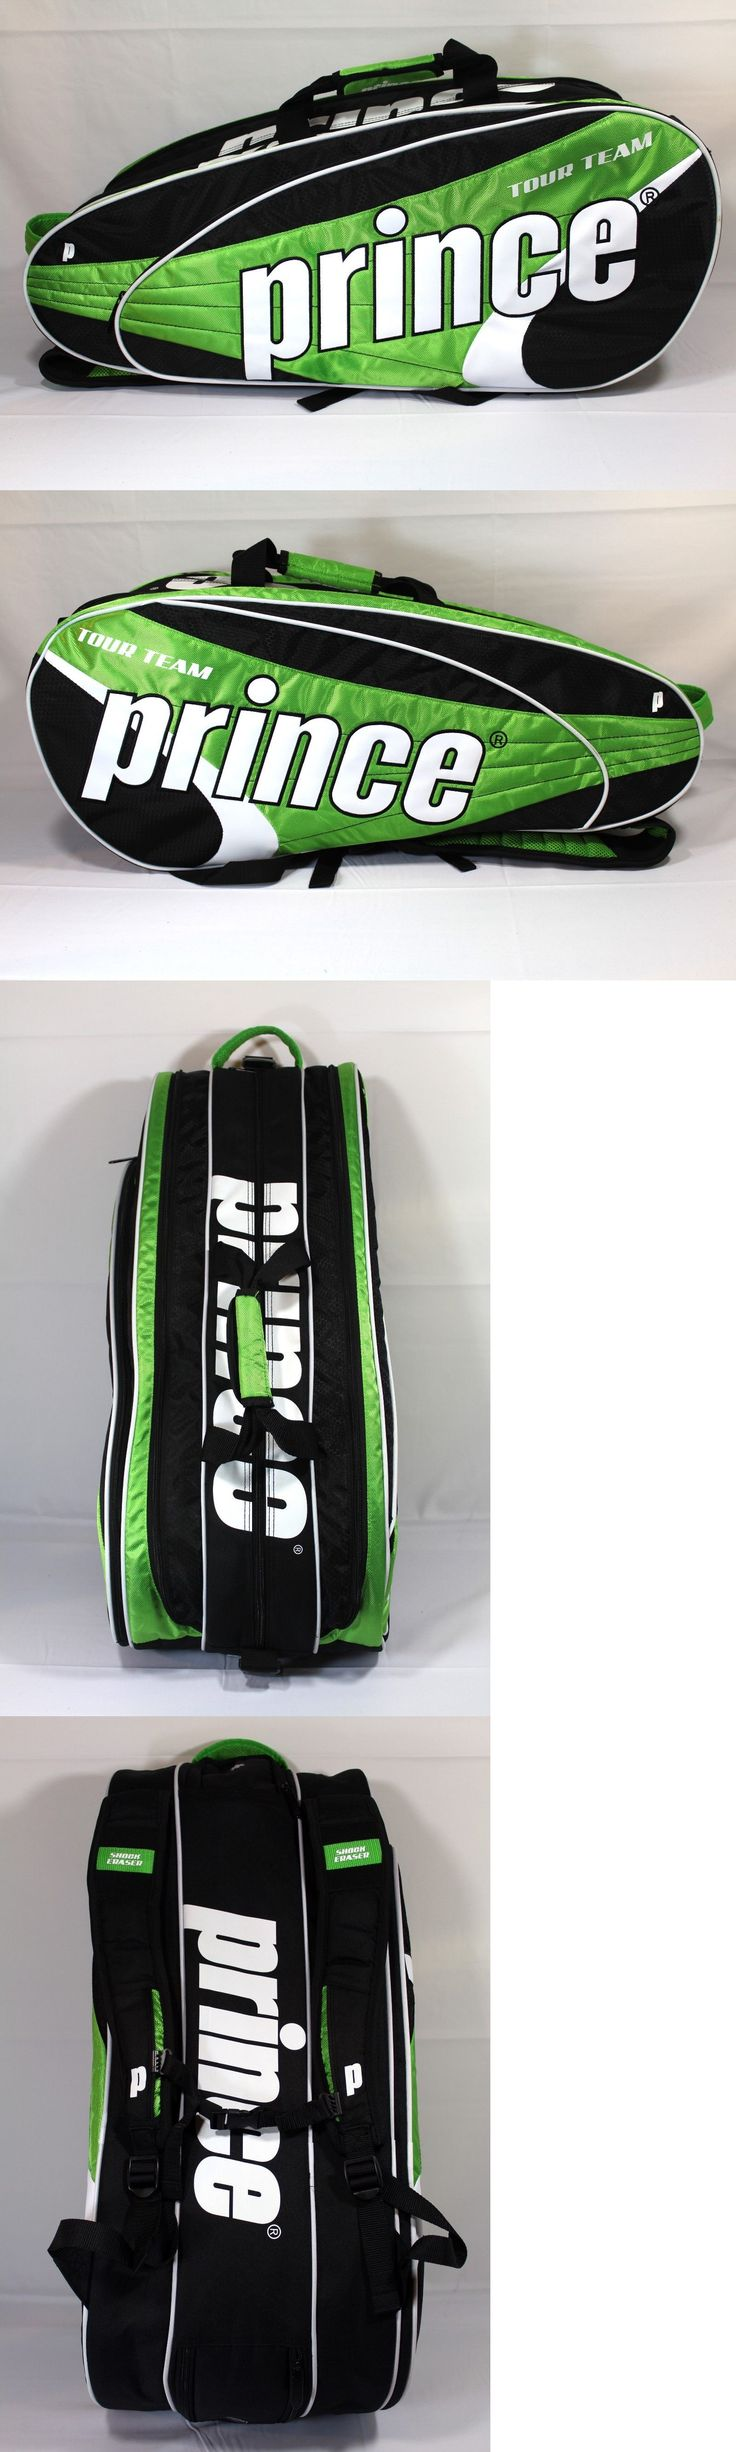 Bags 20869: New Prince Tour Team 9 Pack Tennis Bag Green Black Tennis Racquet Bag -> BUY IT NOW ONLY: $69.94 on eBay!